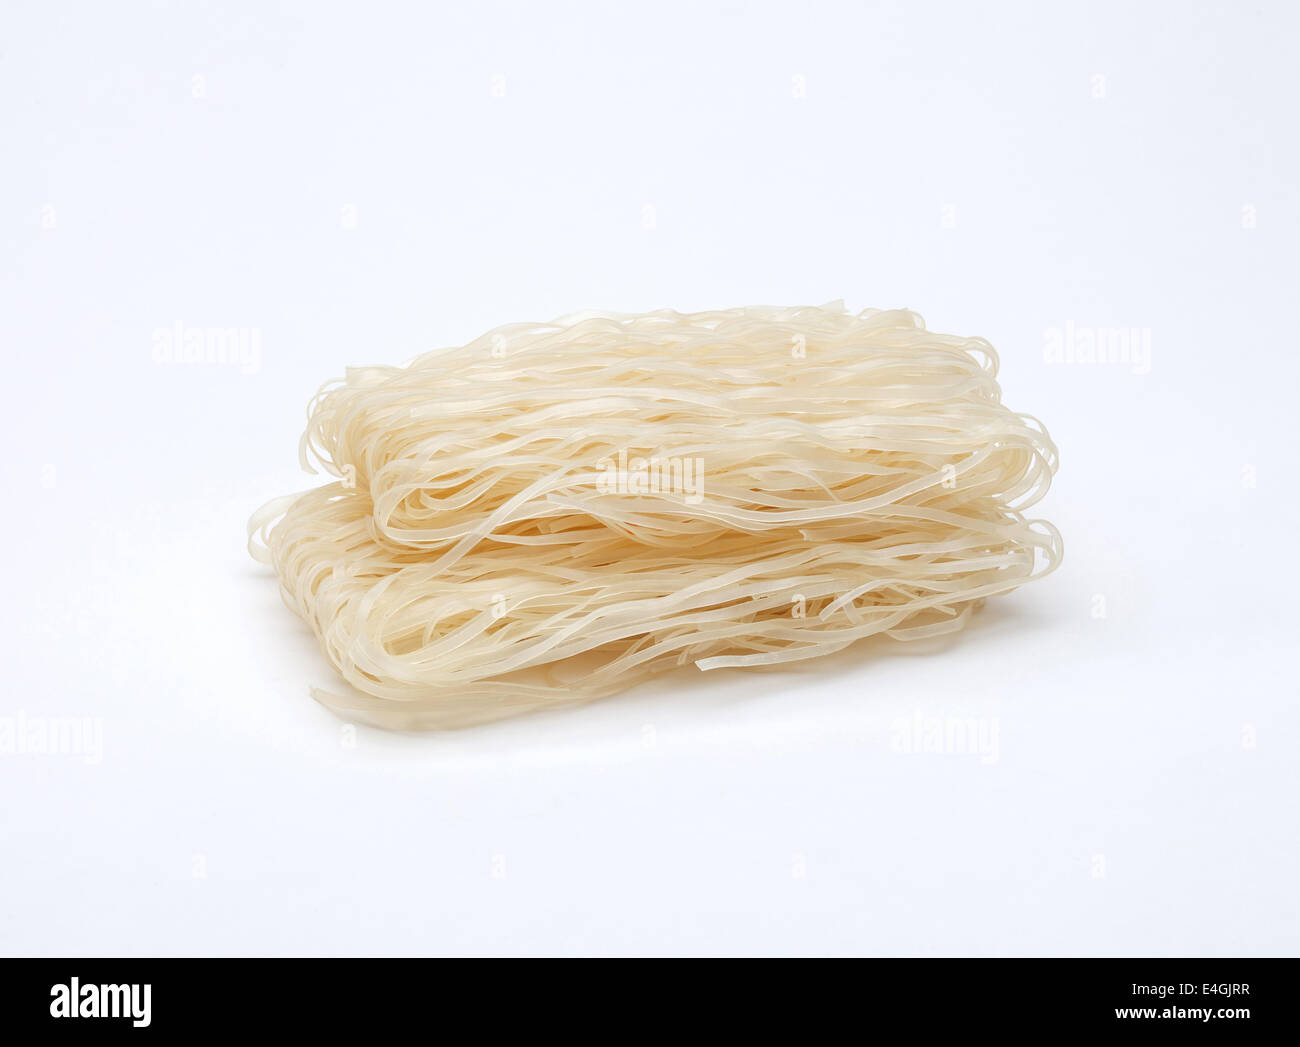 Instant asian style dried brown rice noodles isolated on white background - Stock Image